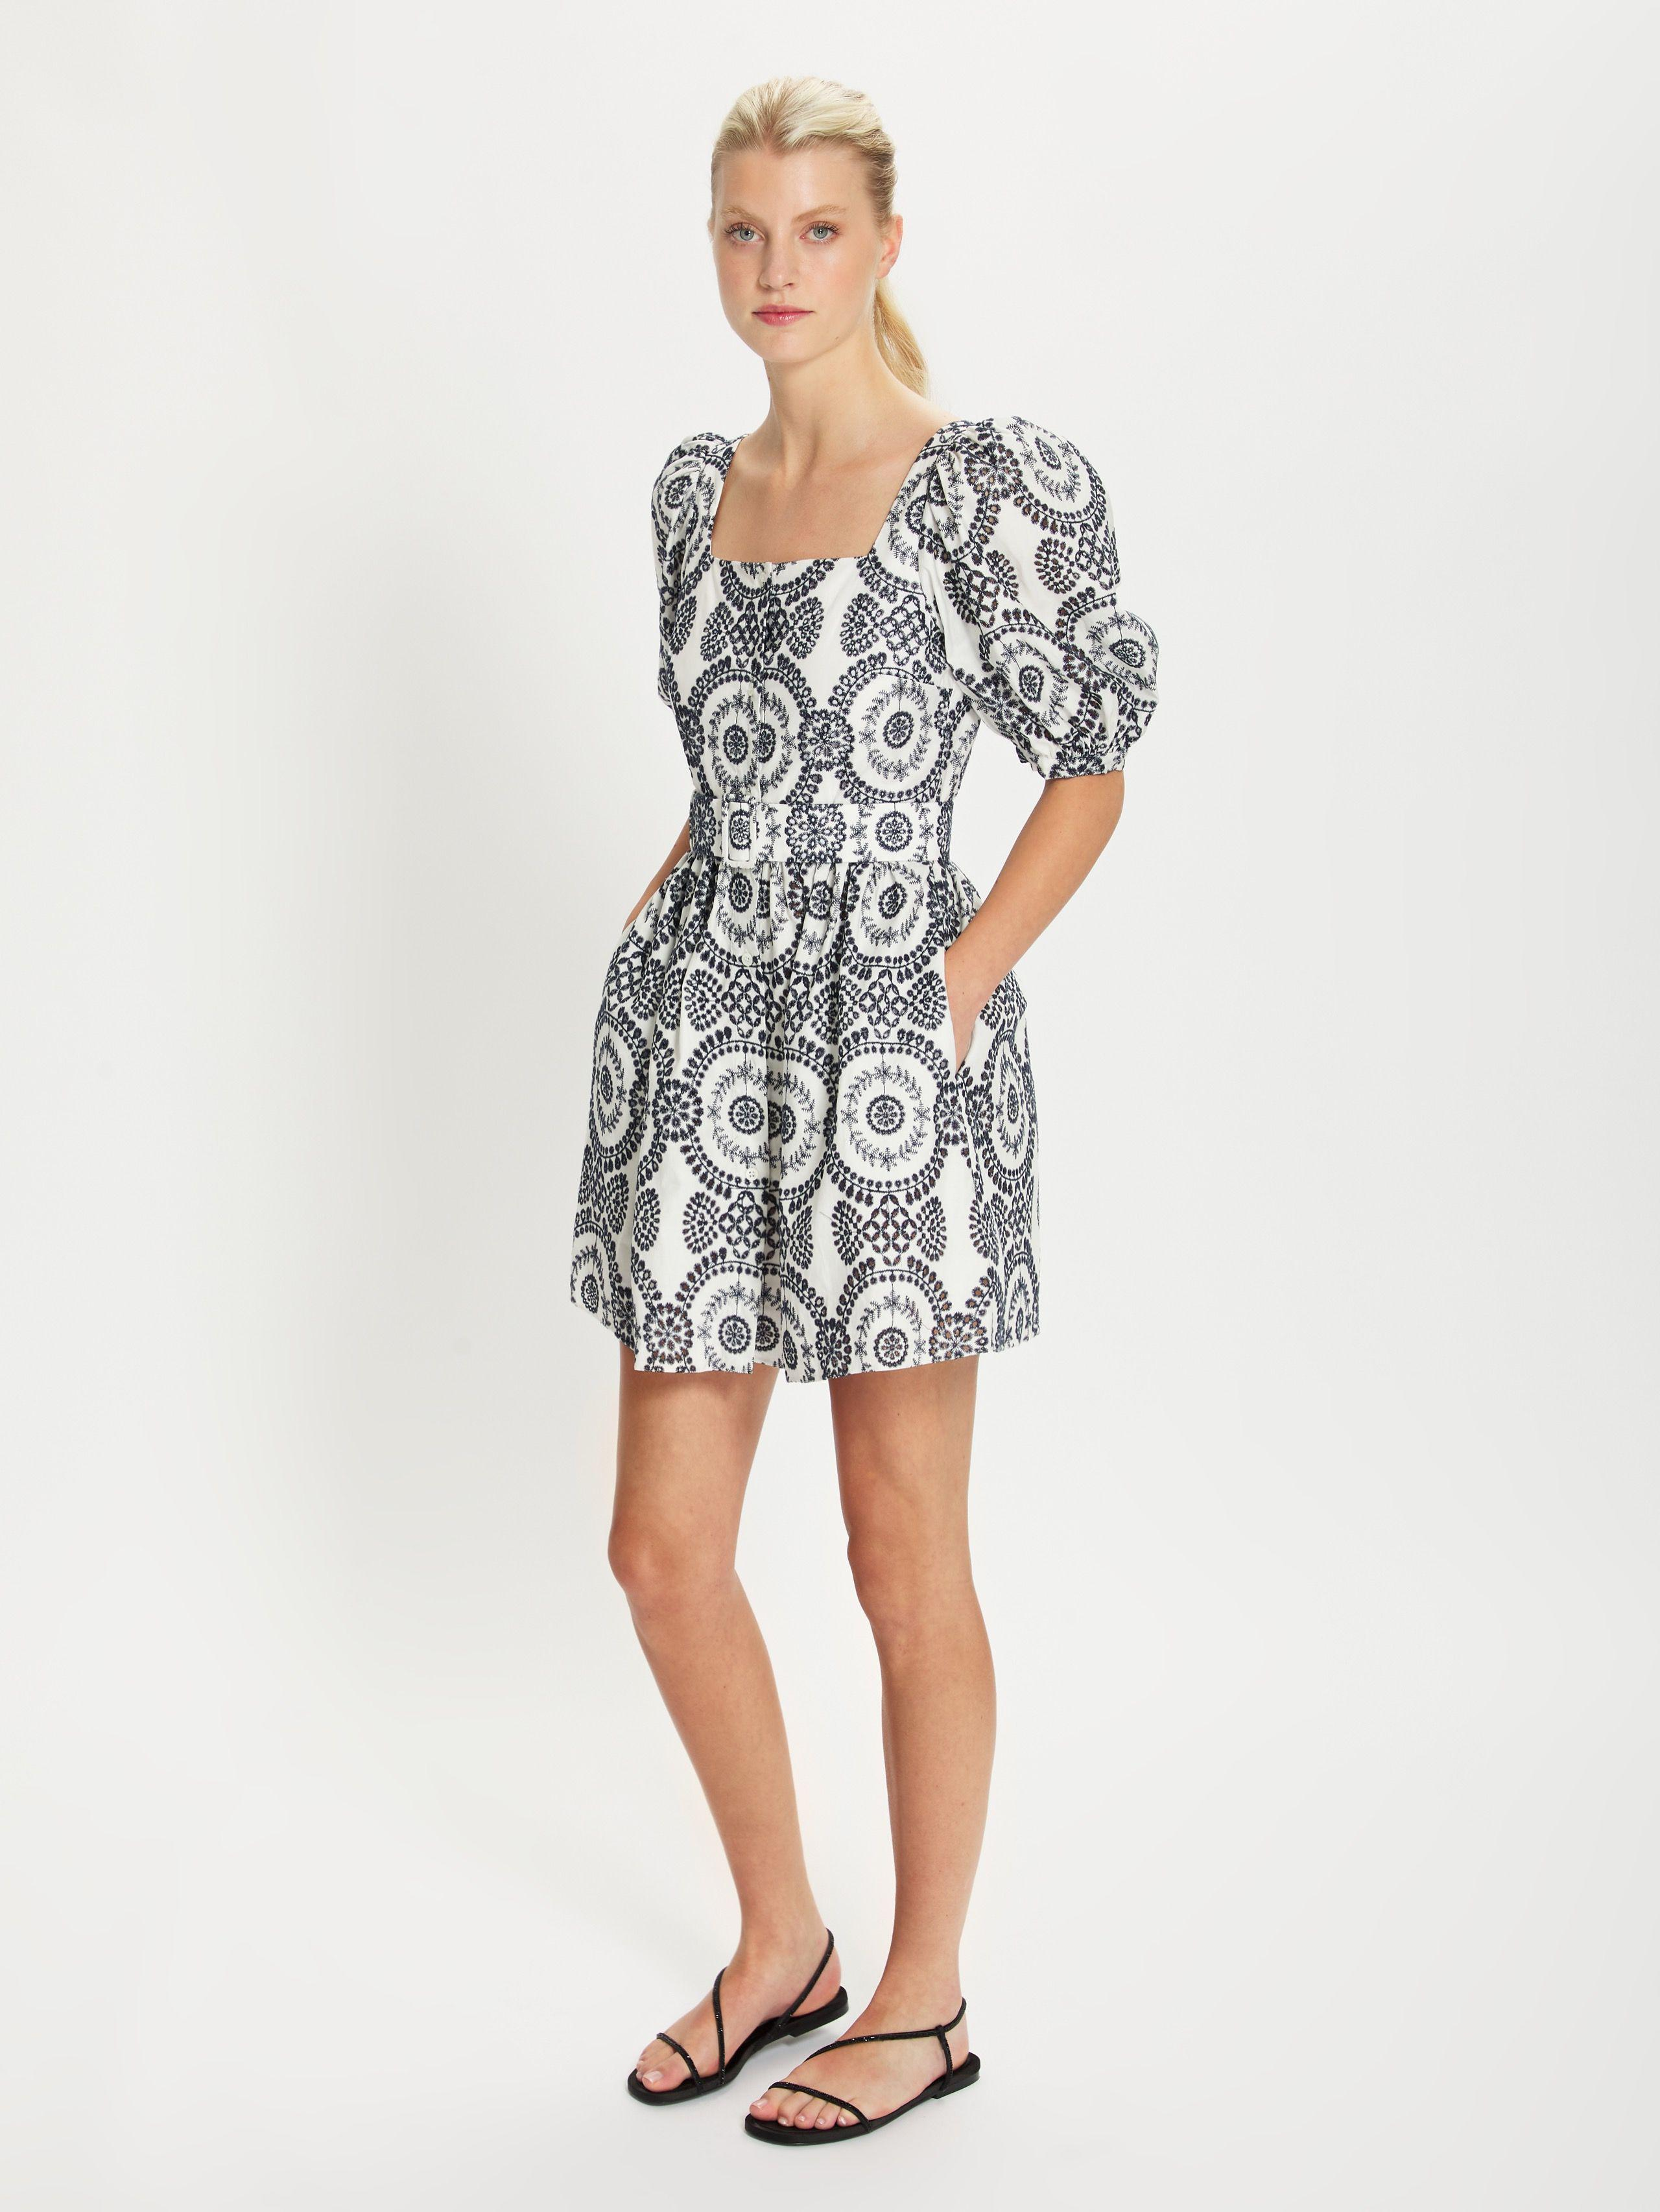 DOMINIQUE NAVY AND WHITE BRODERIE ANGLAISE MINI DRESS